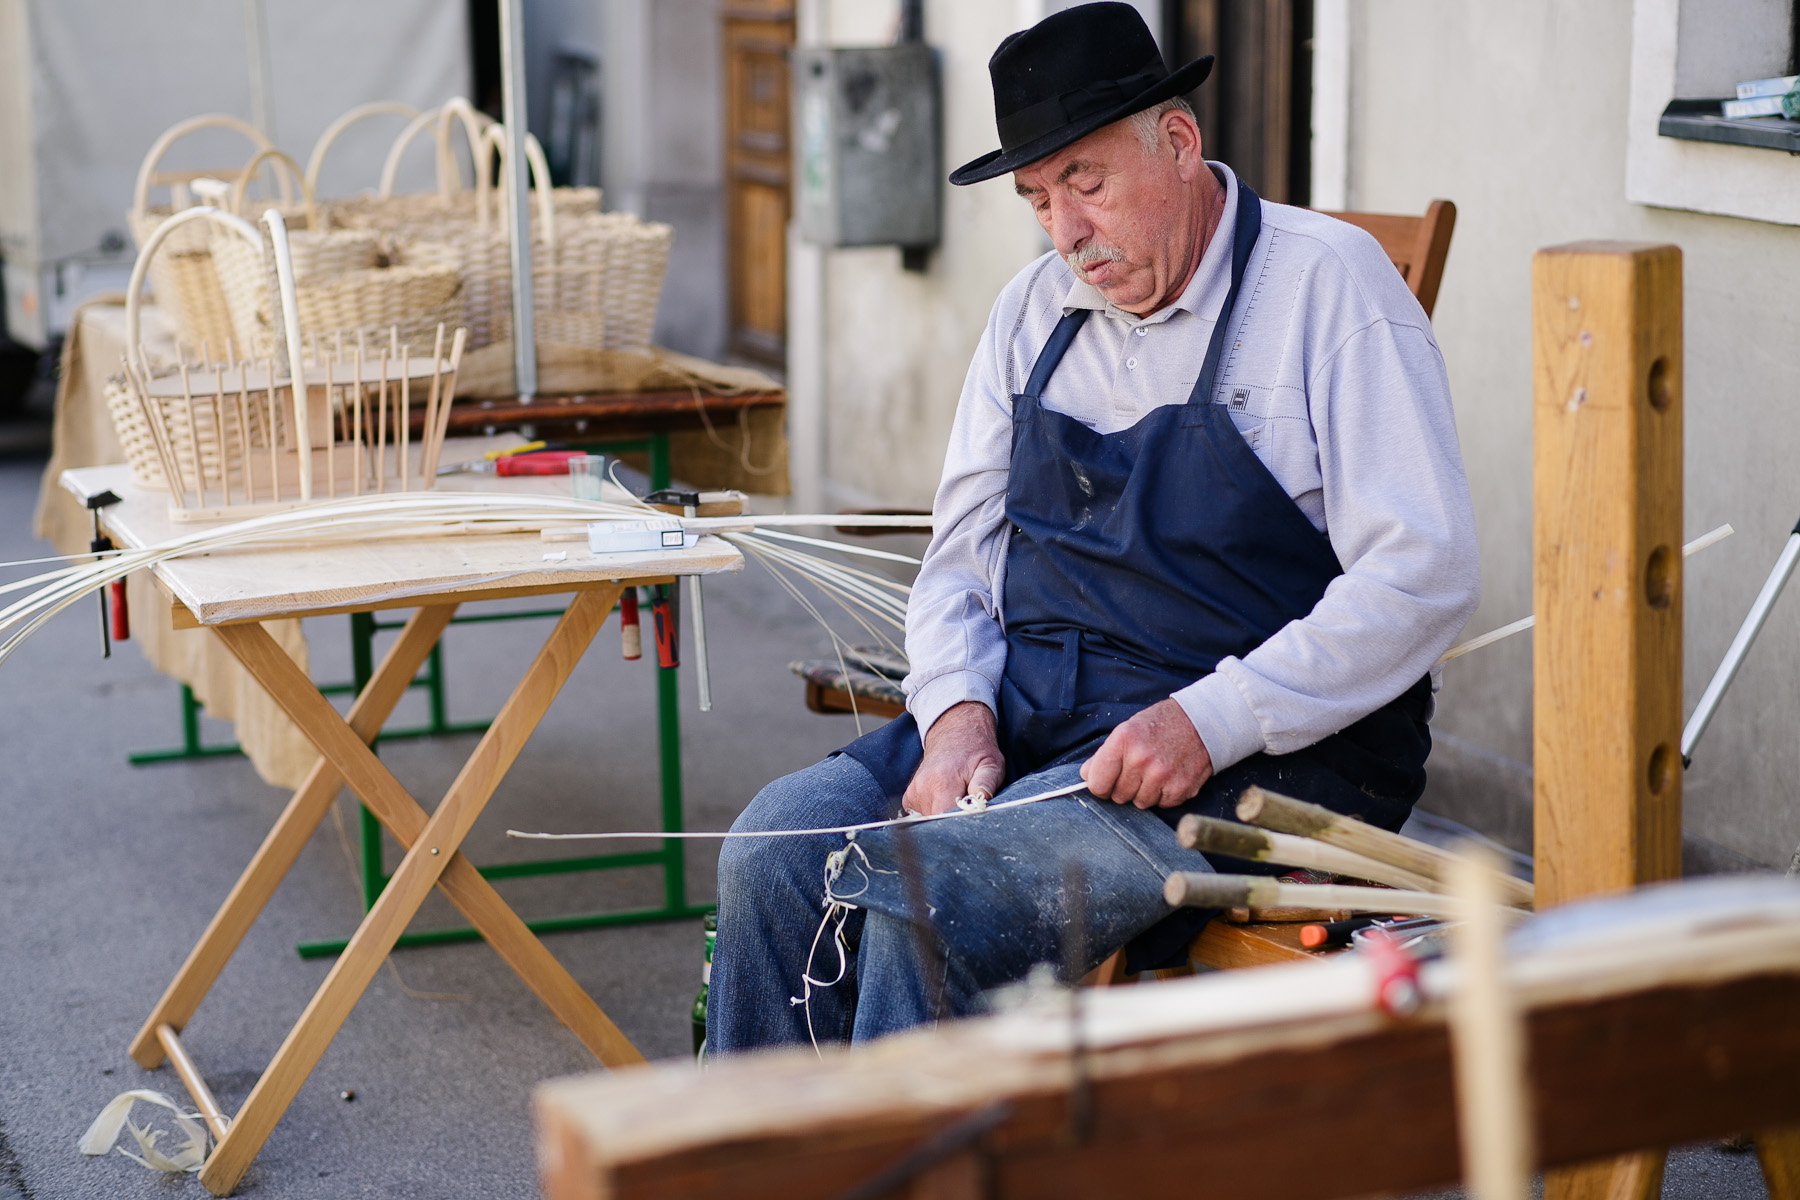 A man cuts wicker to make a basket at the 40th traditional woodenware fair in Ribnica, Slovenia, Sep. 6, 2015.